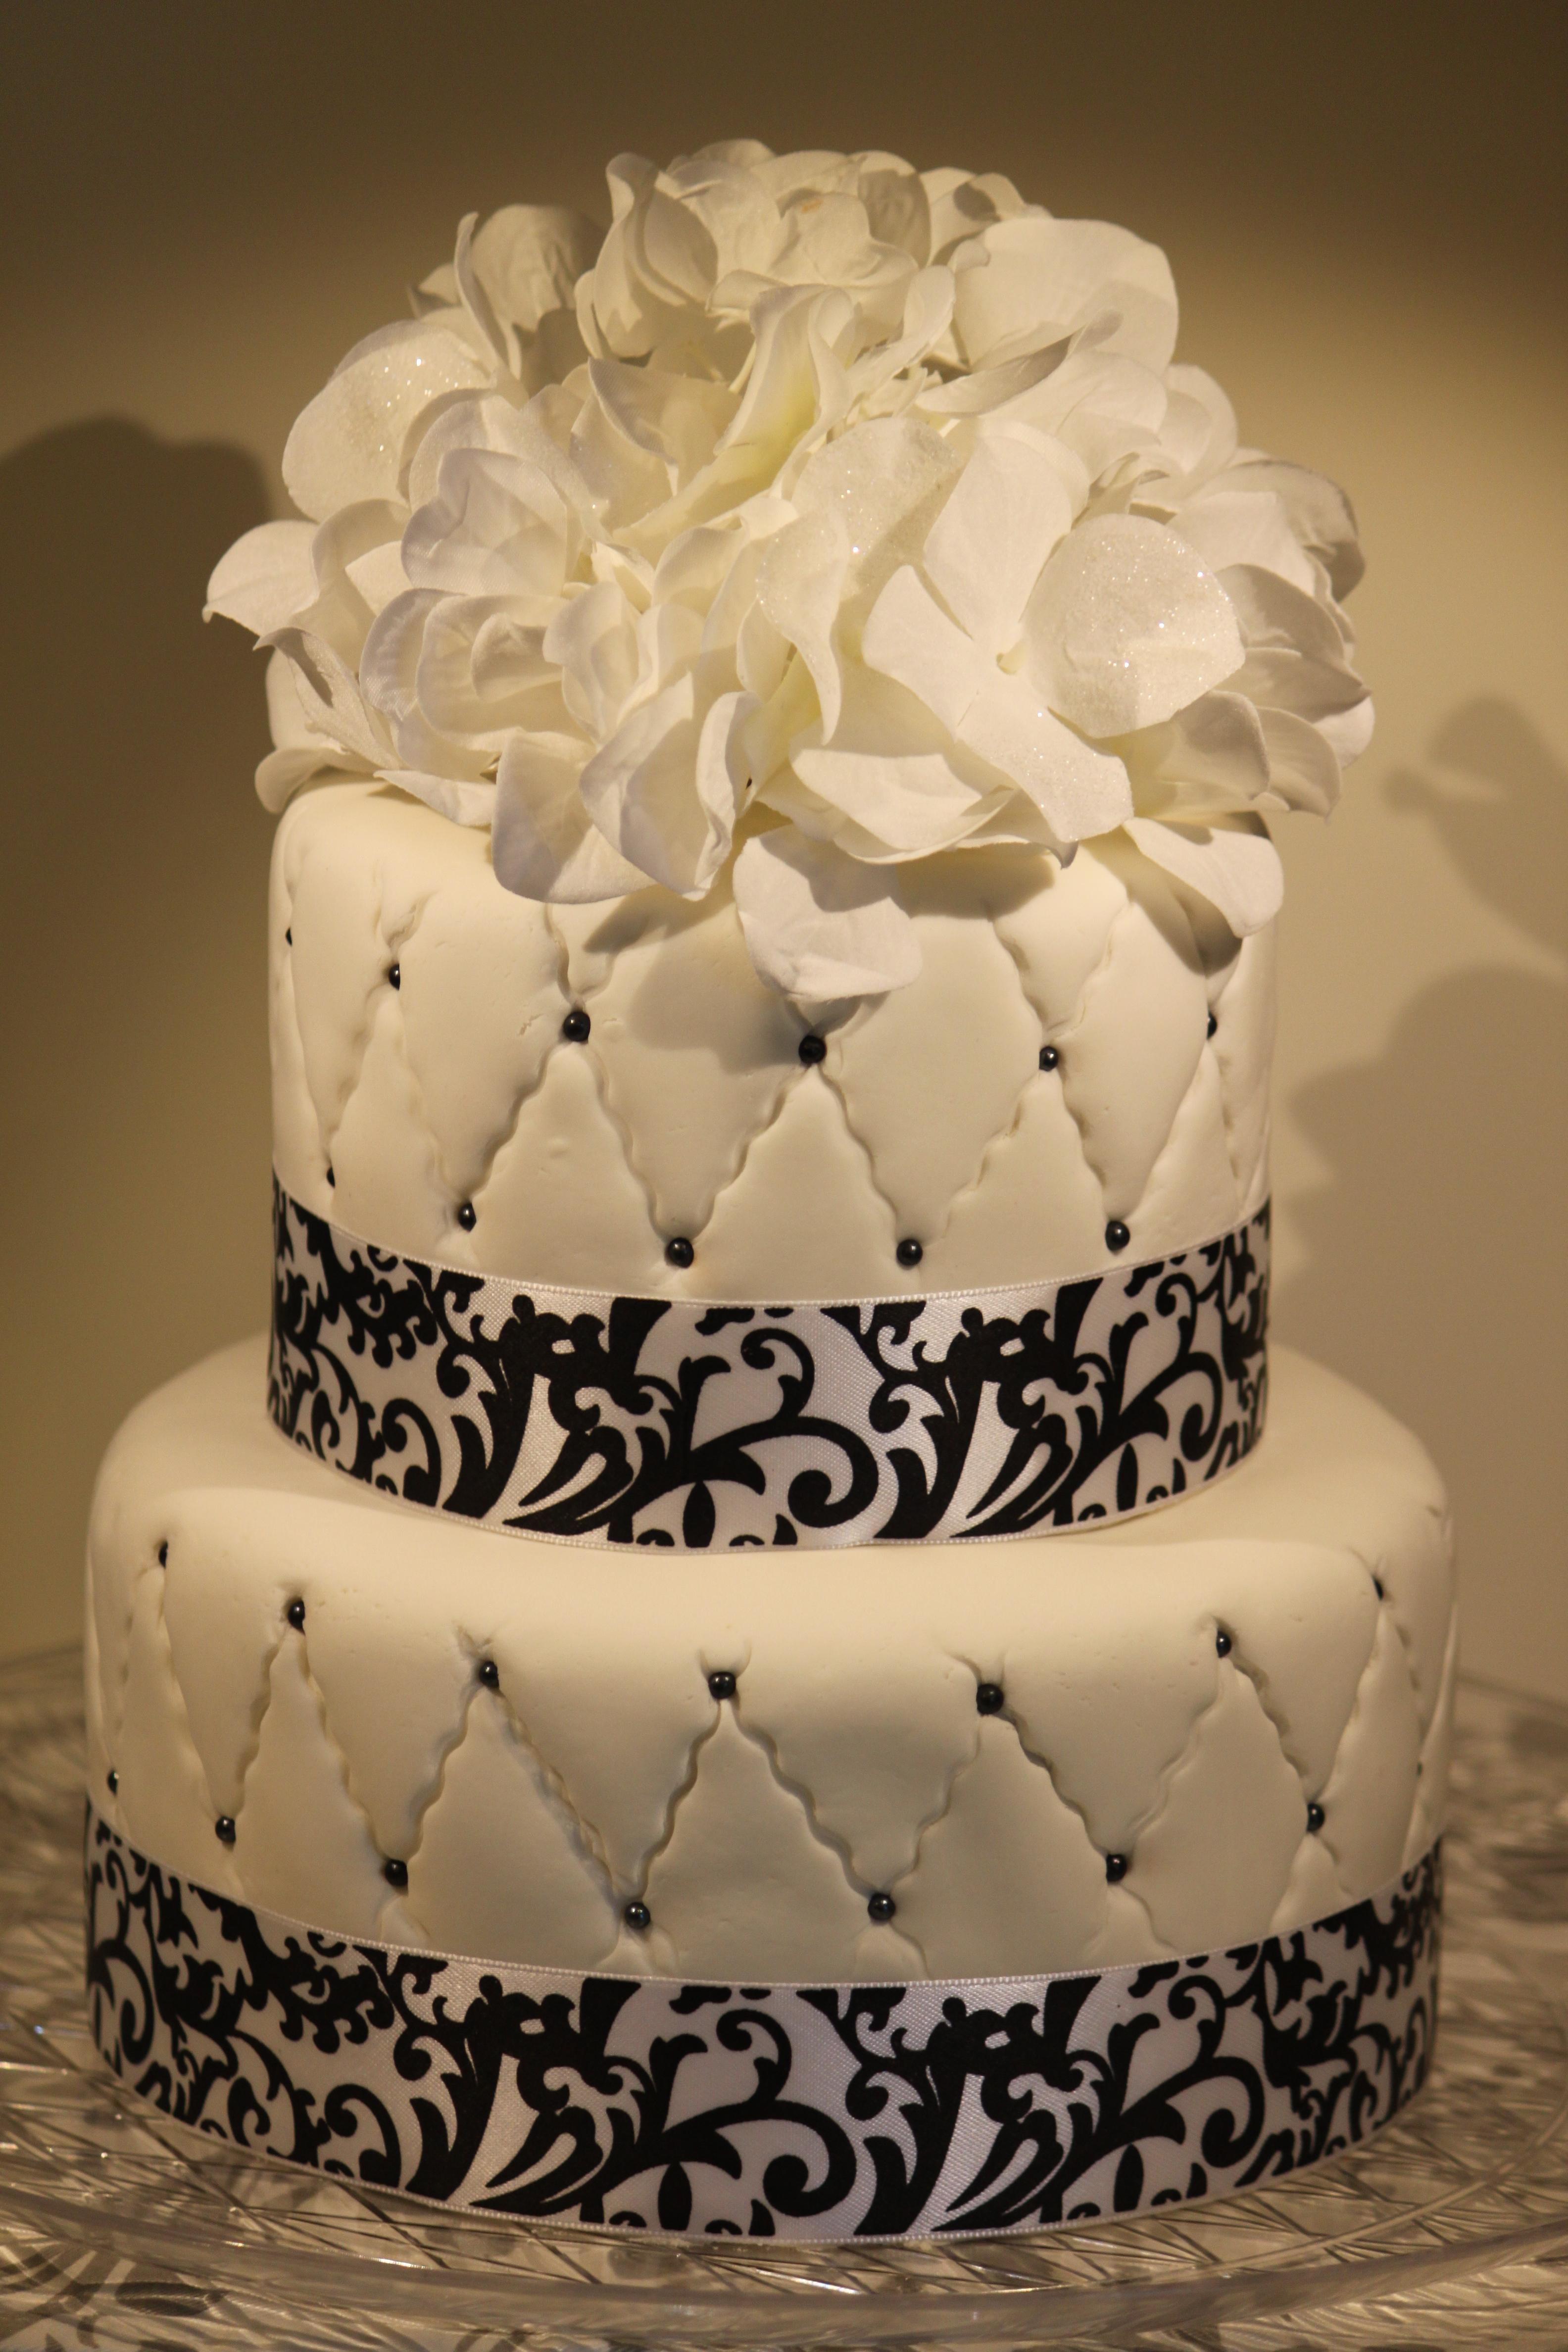 Black And White Quilted Fondant Birthday Cake